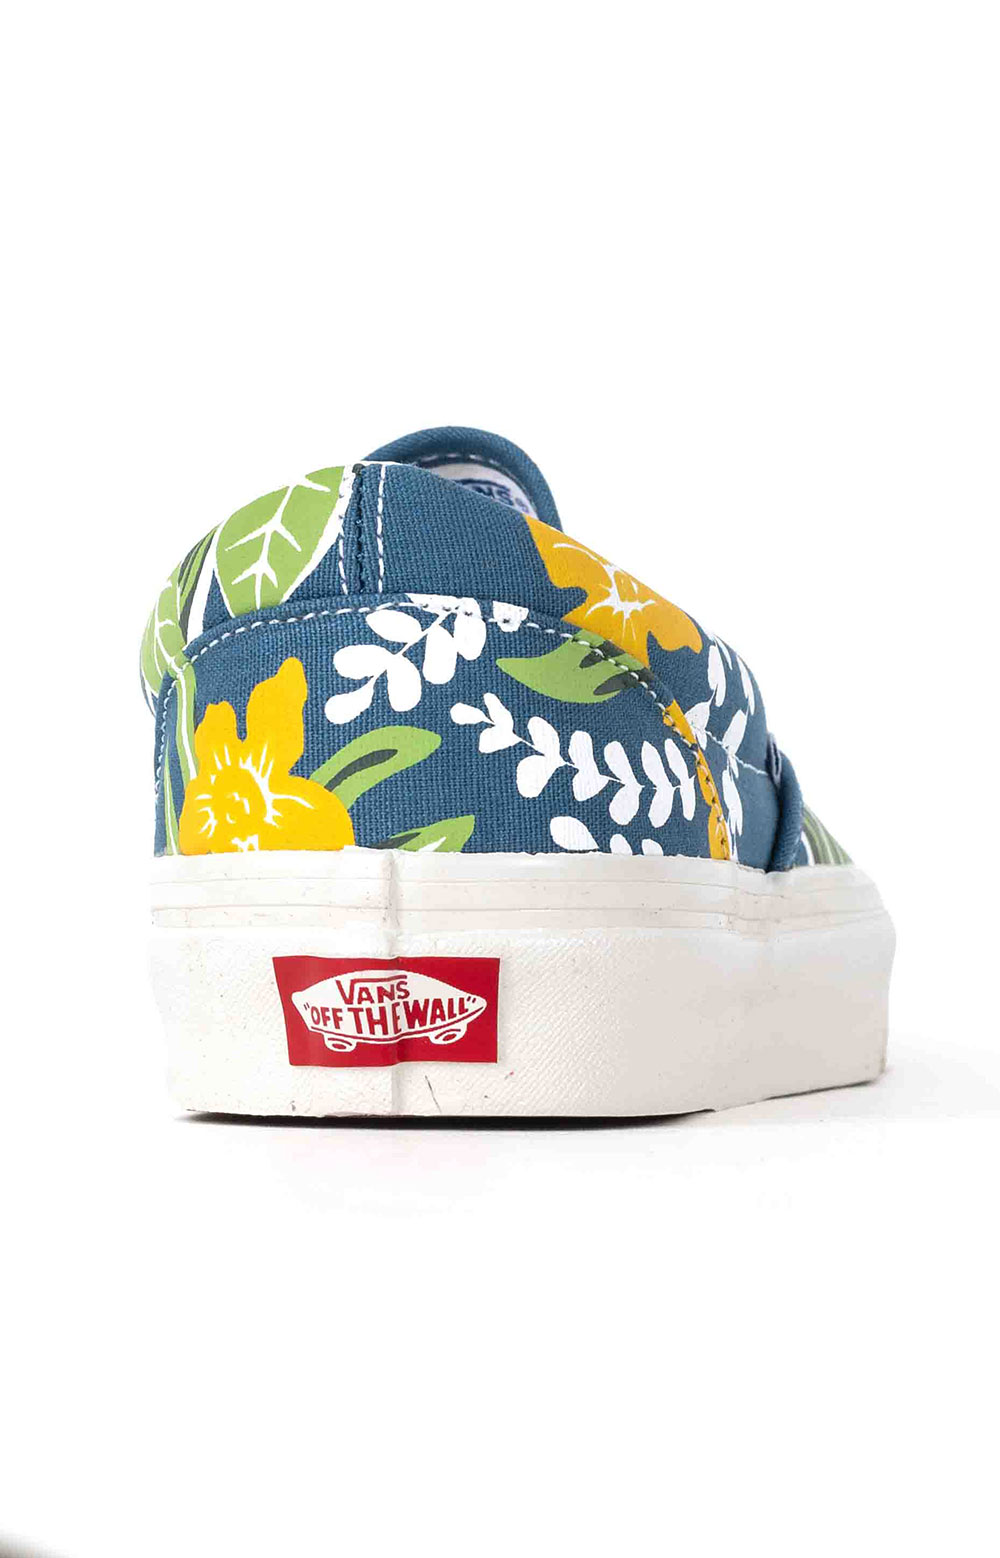 (JEXWVQ) Anaheim Factory Classic Slip-On 98 DX Shoes - OG Aloha Navy 5